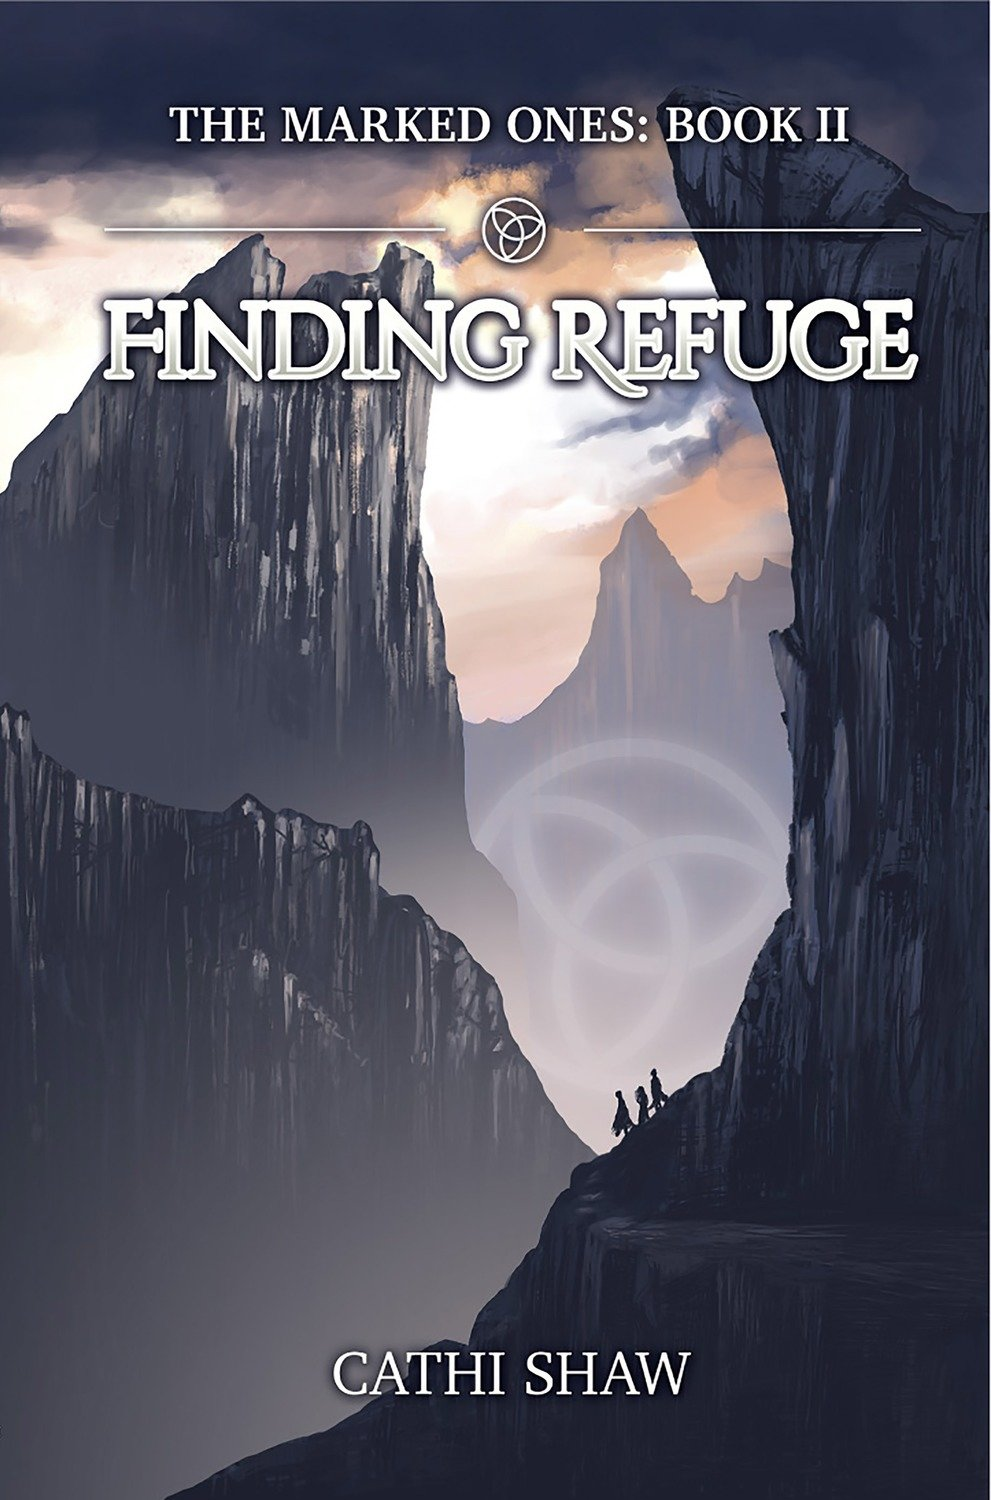 The Marked Ones: Finding Refuge